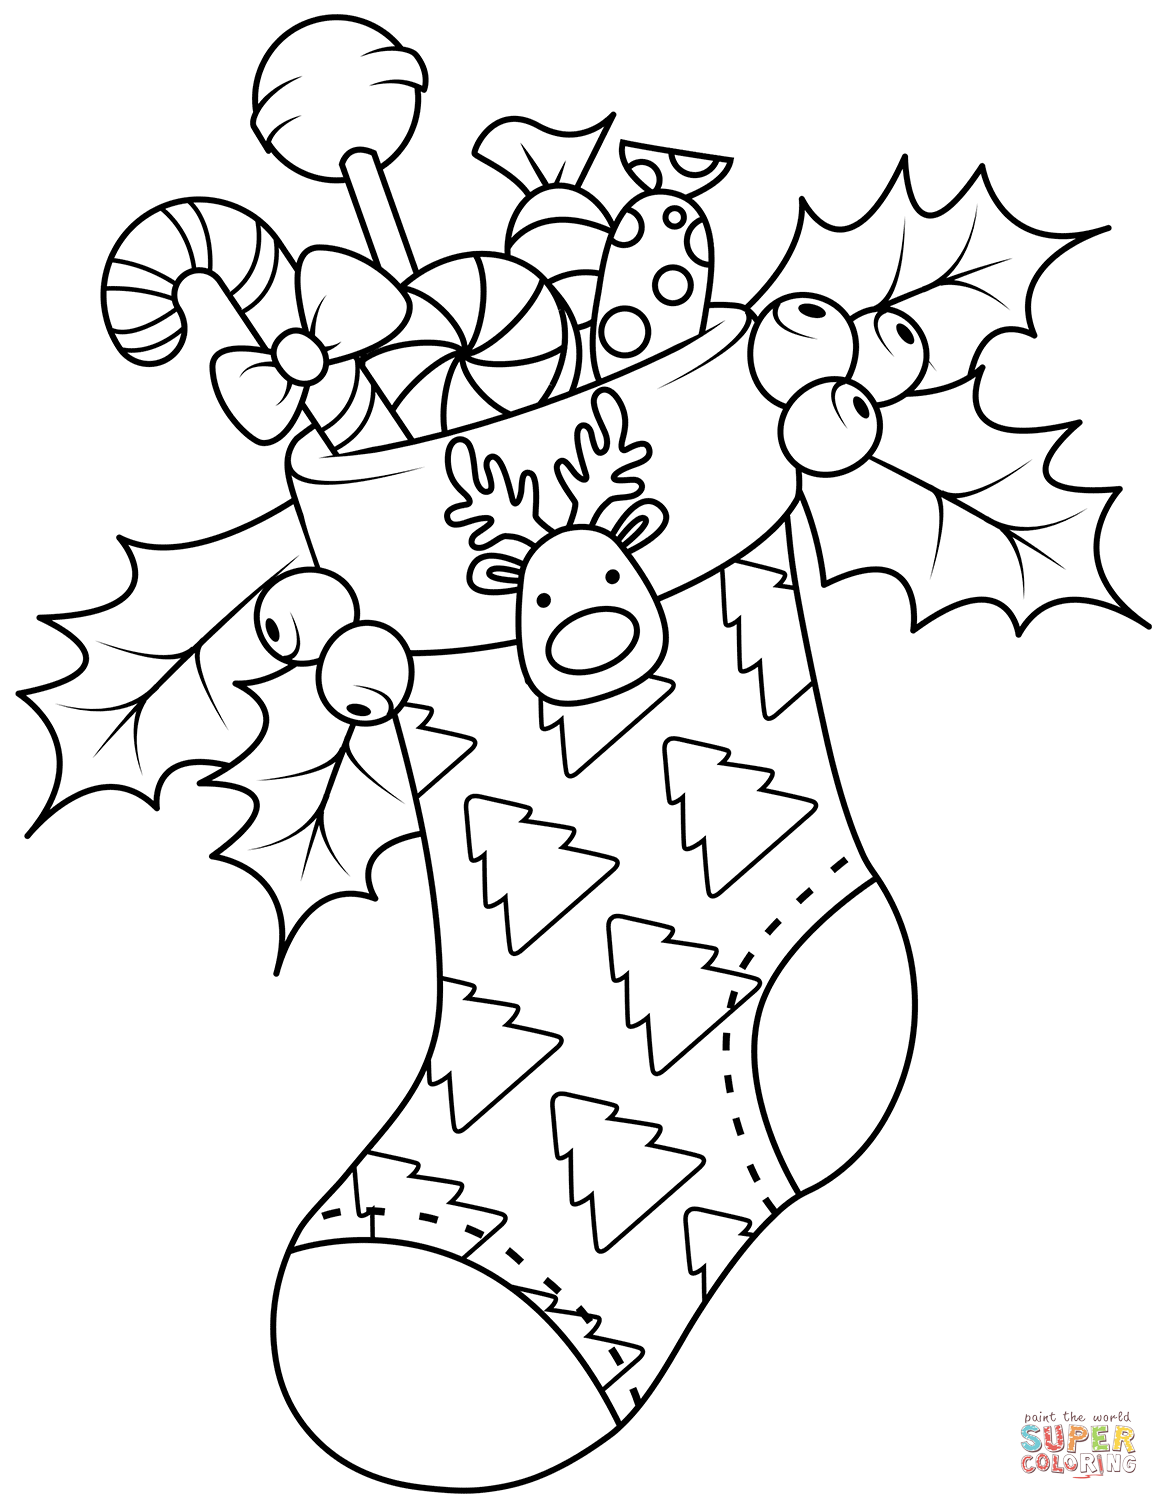 stocking coloring page christmas stocking coloring page free printable coloring stocking coloring page